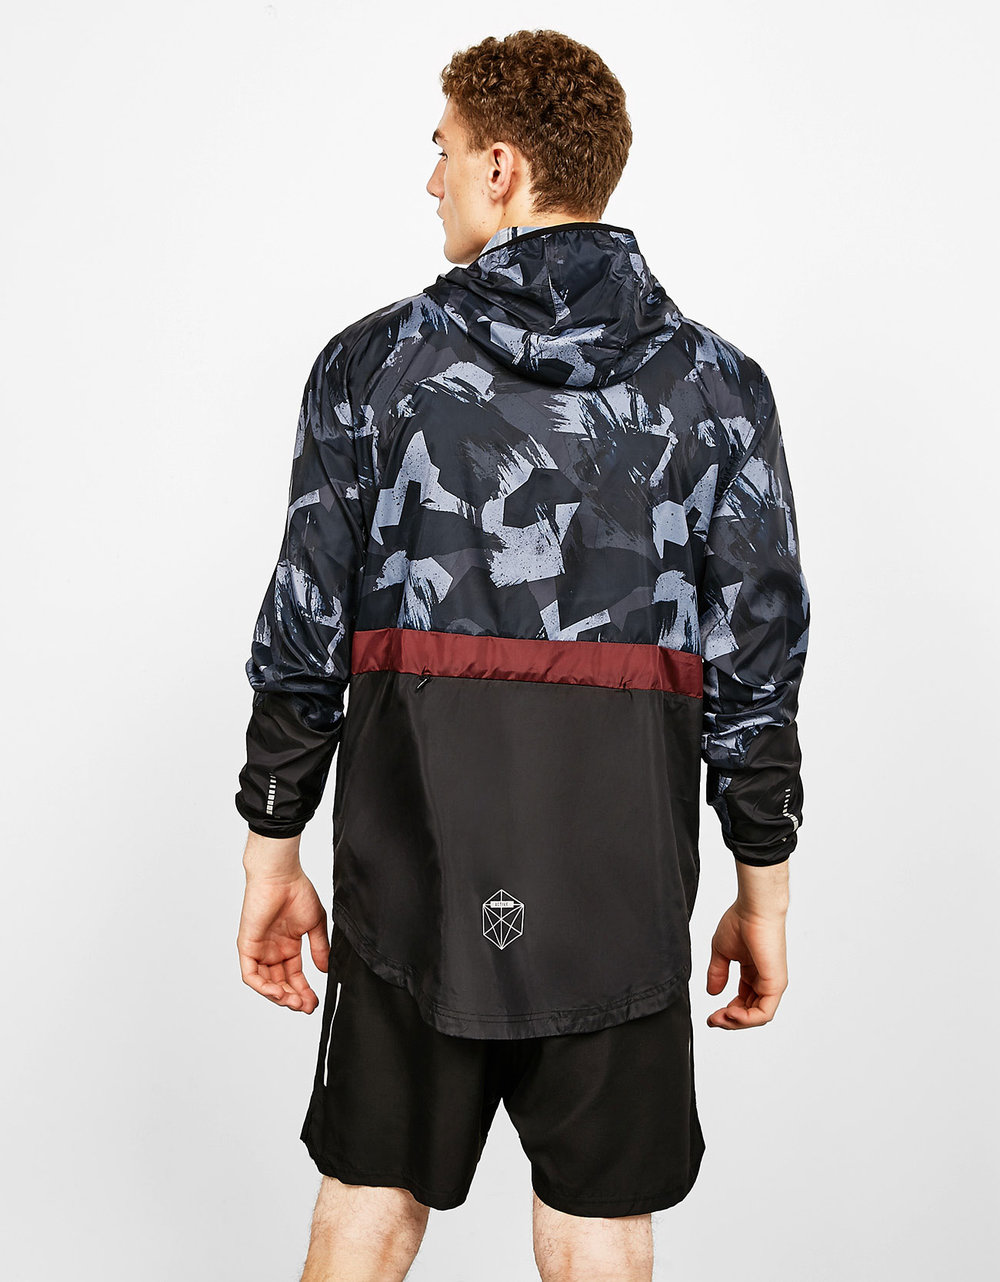 Technical sport jacket with full print, £45.99 Sports Bermuda shorts with reflective detail, £15.99